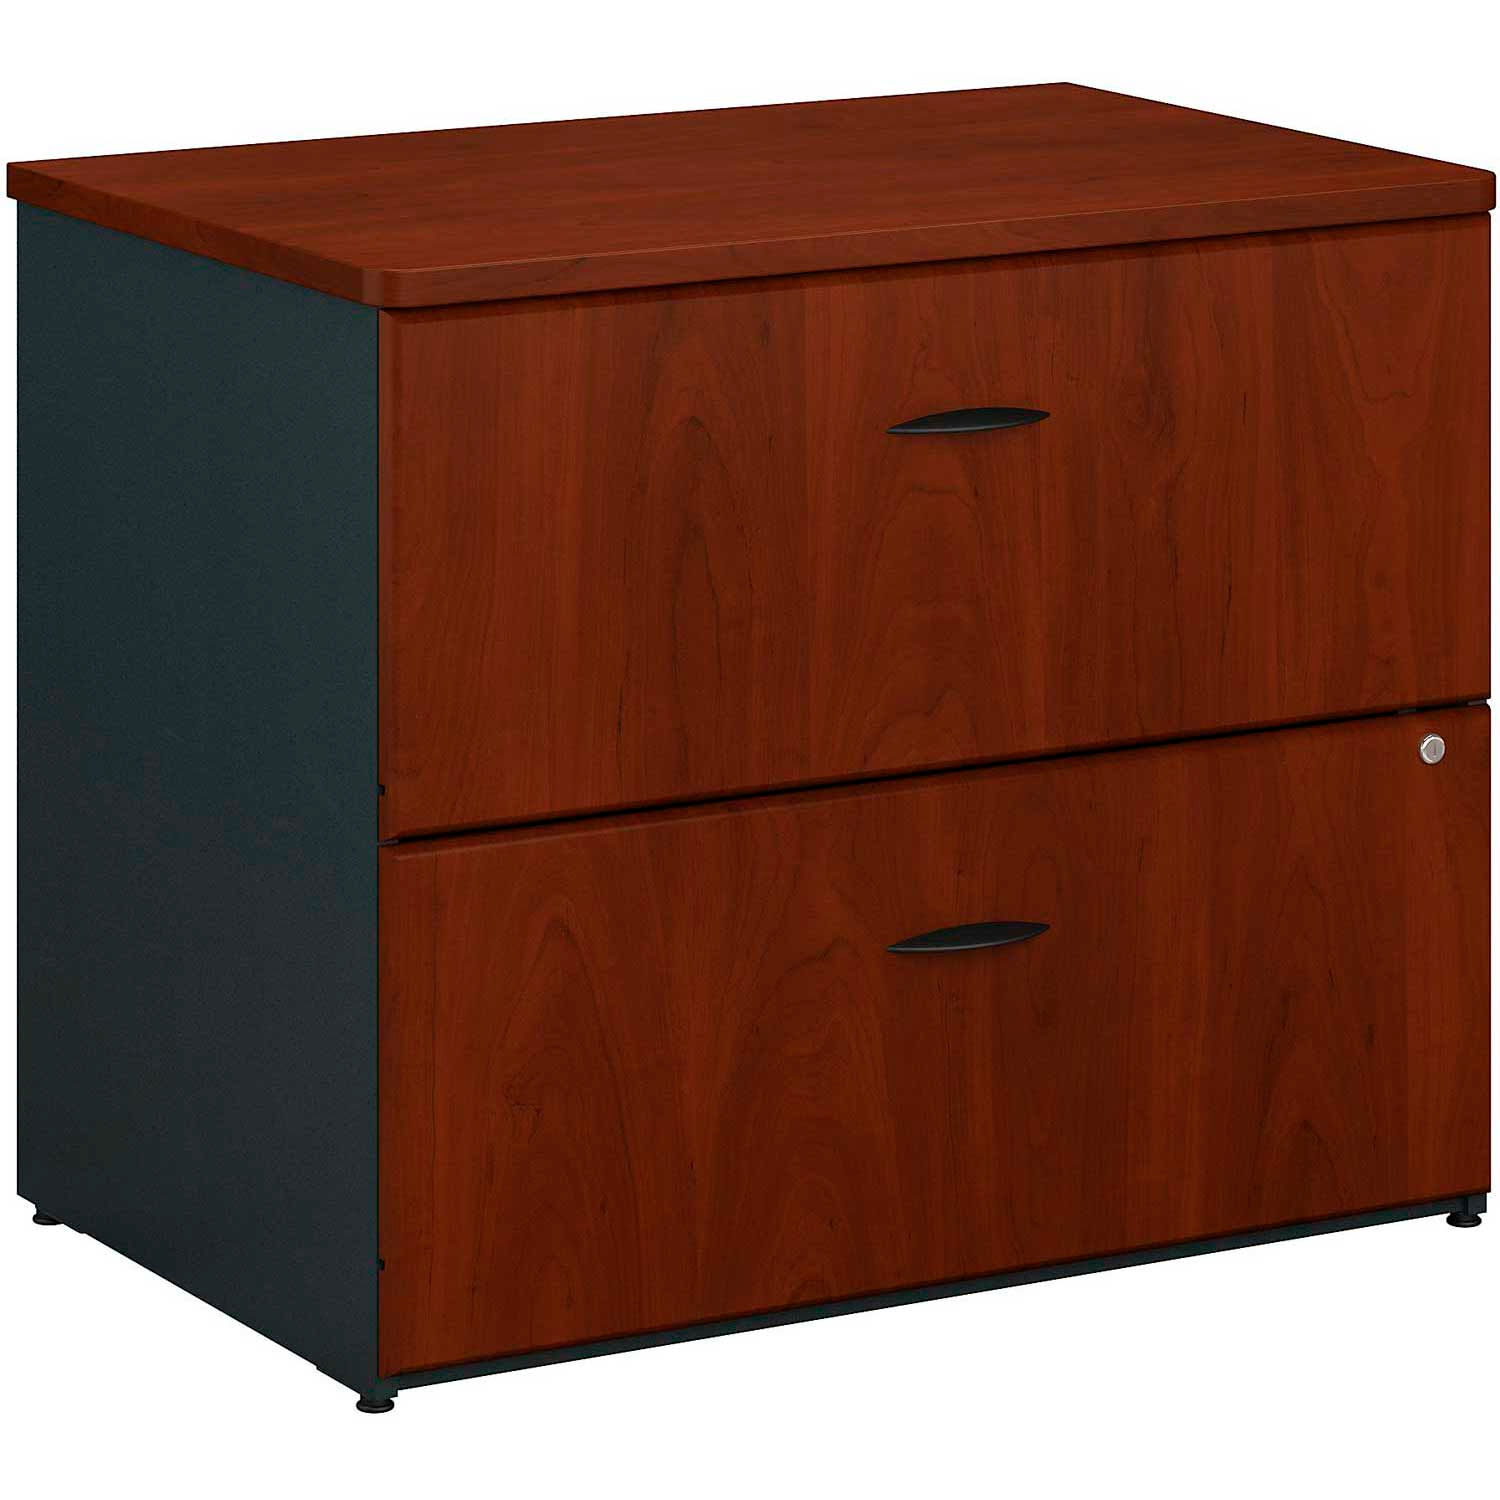 Picture of: Desks Steel Office Collections Bush Furniture 2 Drawer Lateral File Cabinet Assembled Hansen Cherry Series A B474061 Globalindustrial Ca